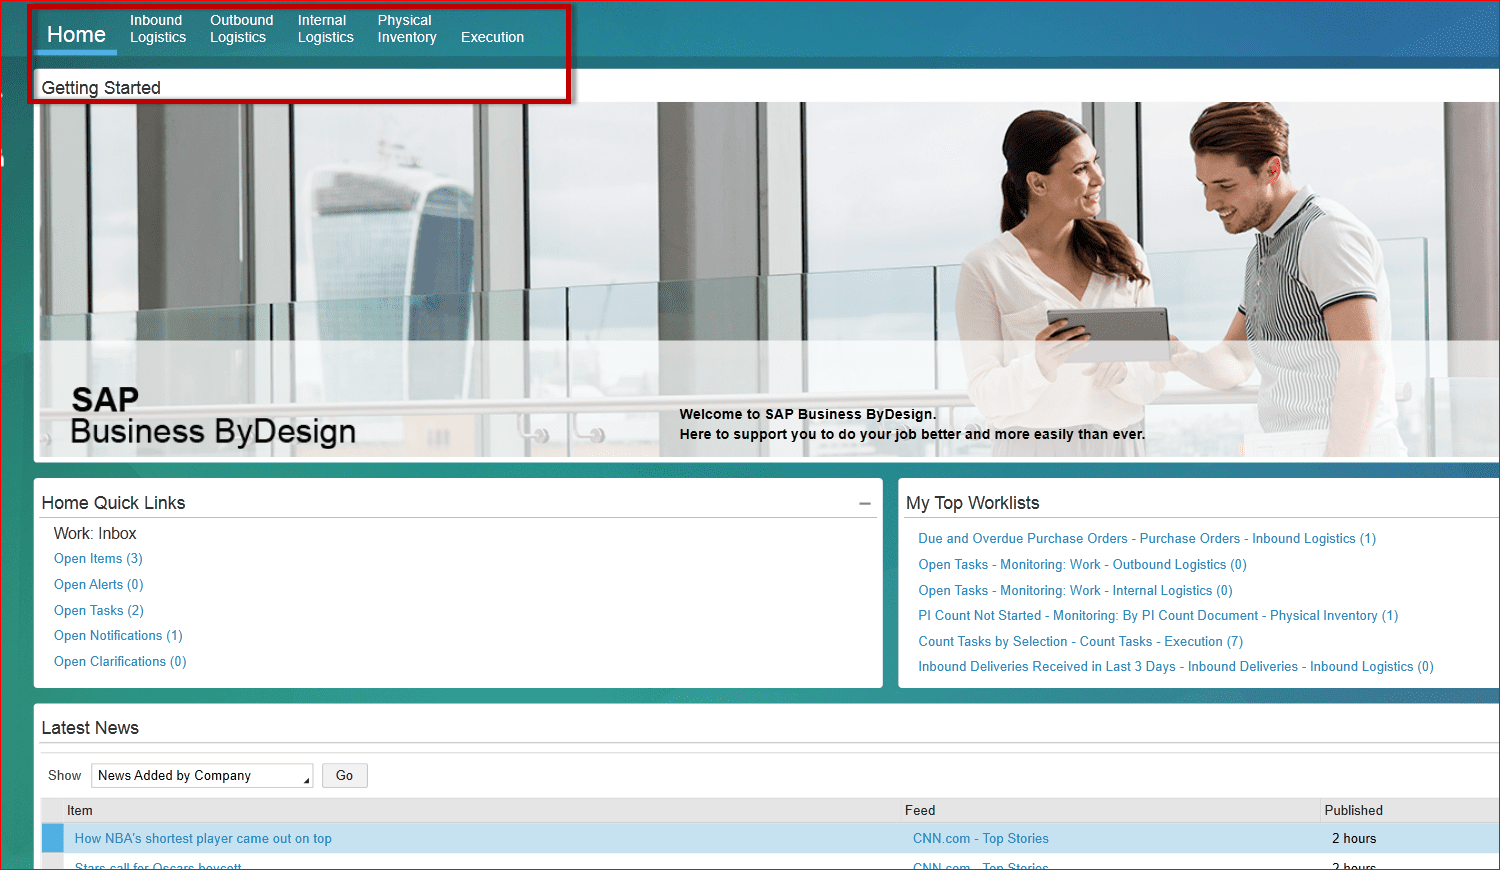 How to Use and Set Up Roles in SAP Business ByDesign